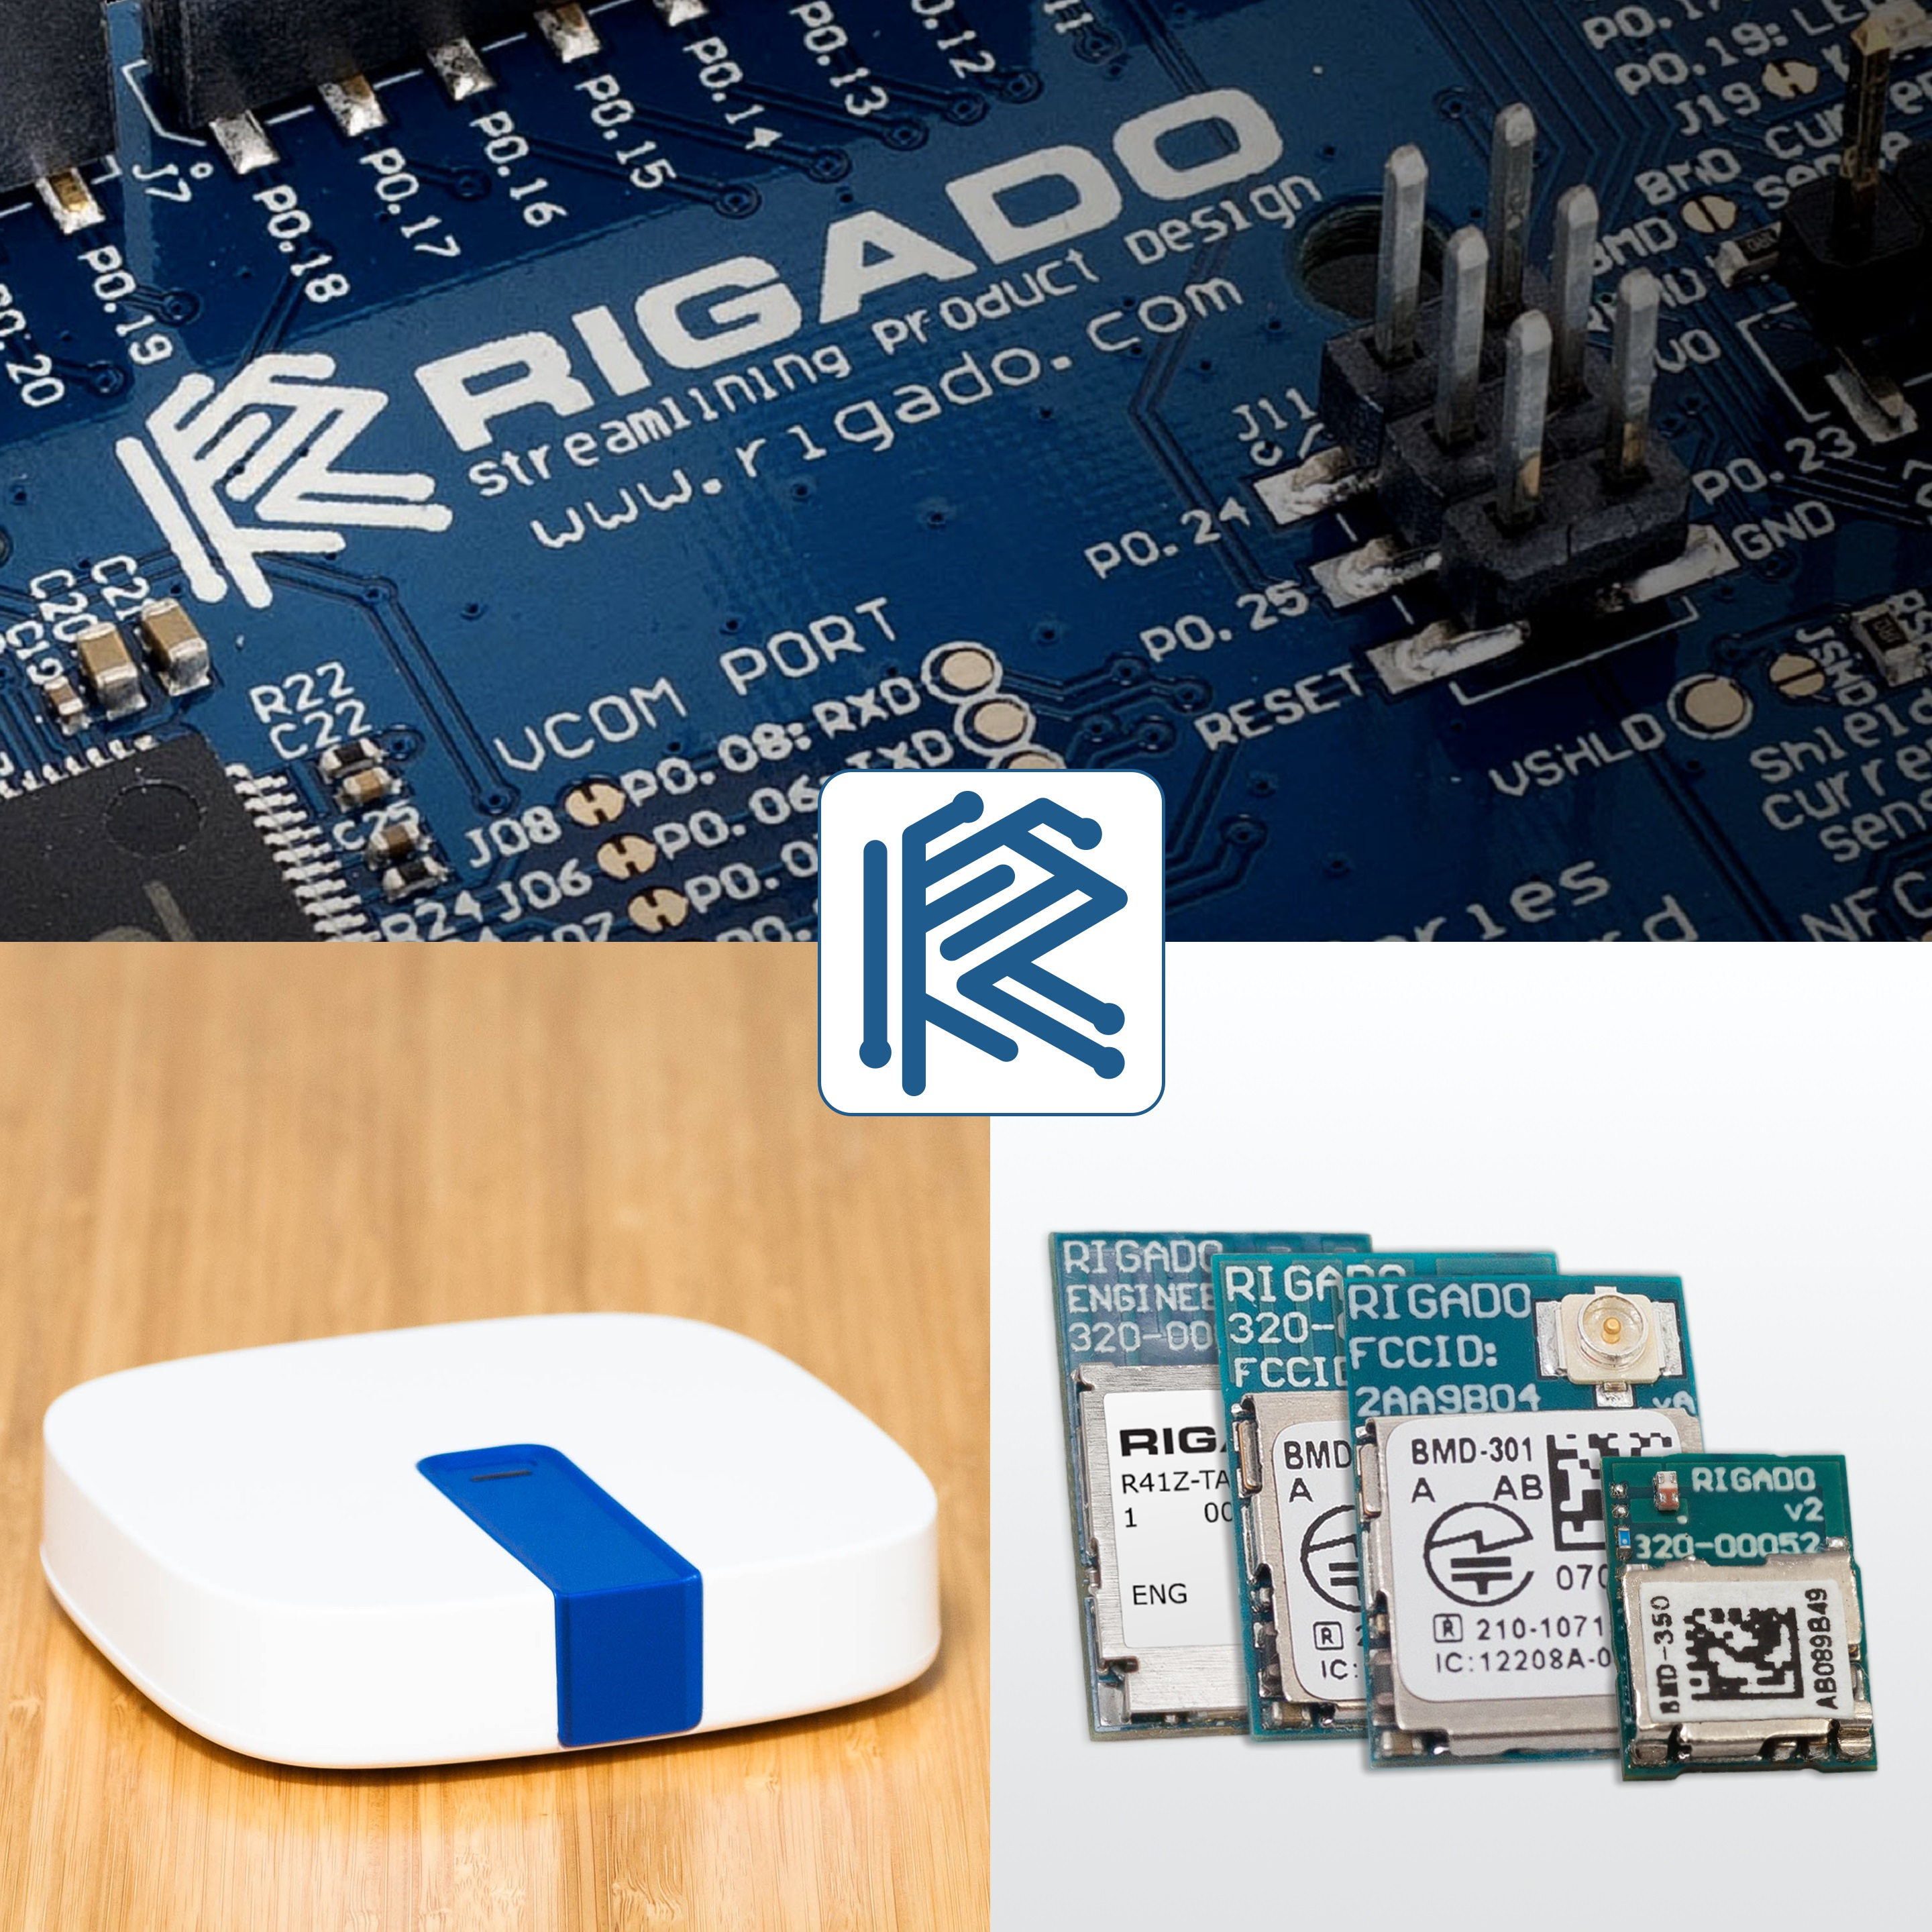 Rigado integrated wireless solutions